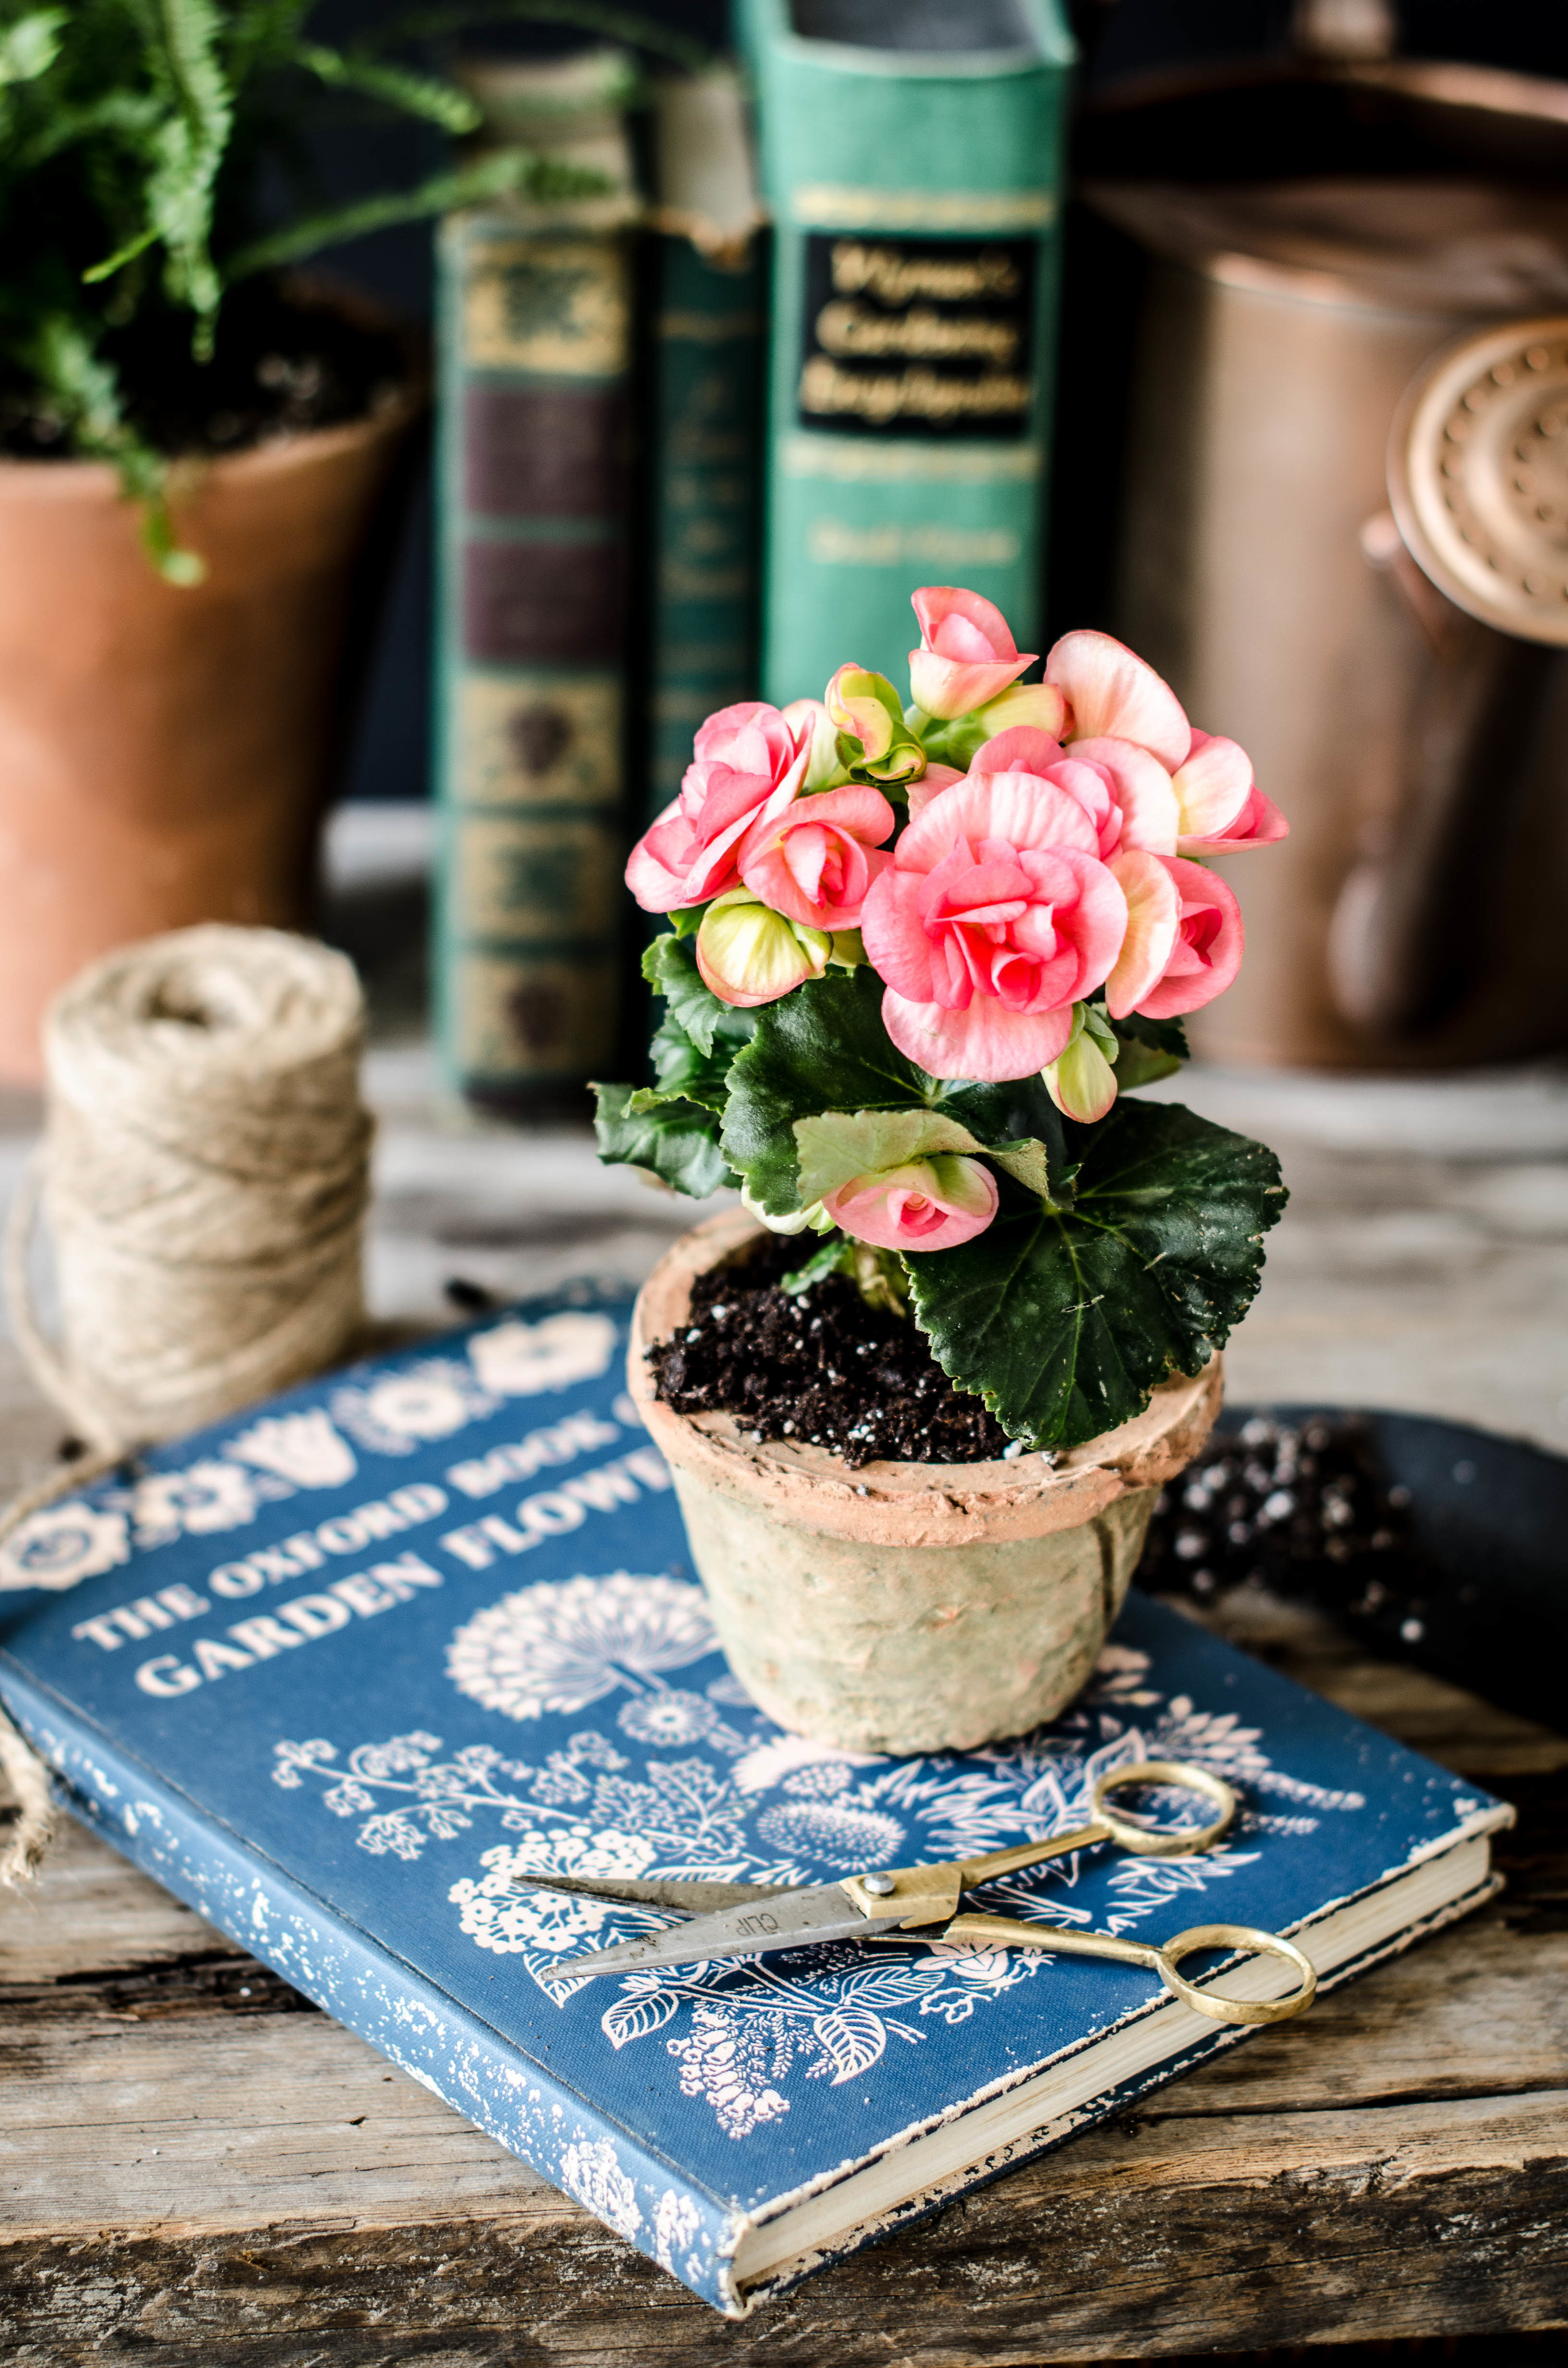 ROSE & IVY Journal Spring Planting The Prettiest Items for Your Garden